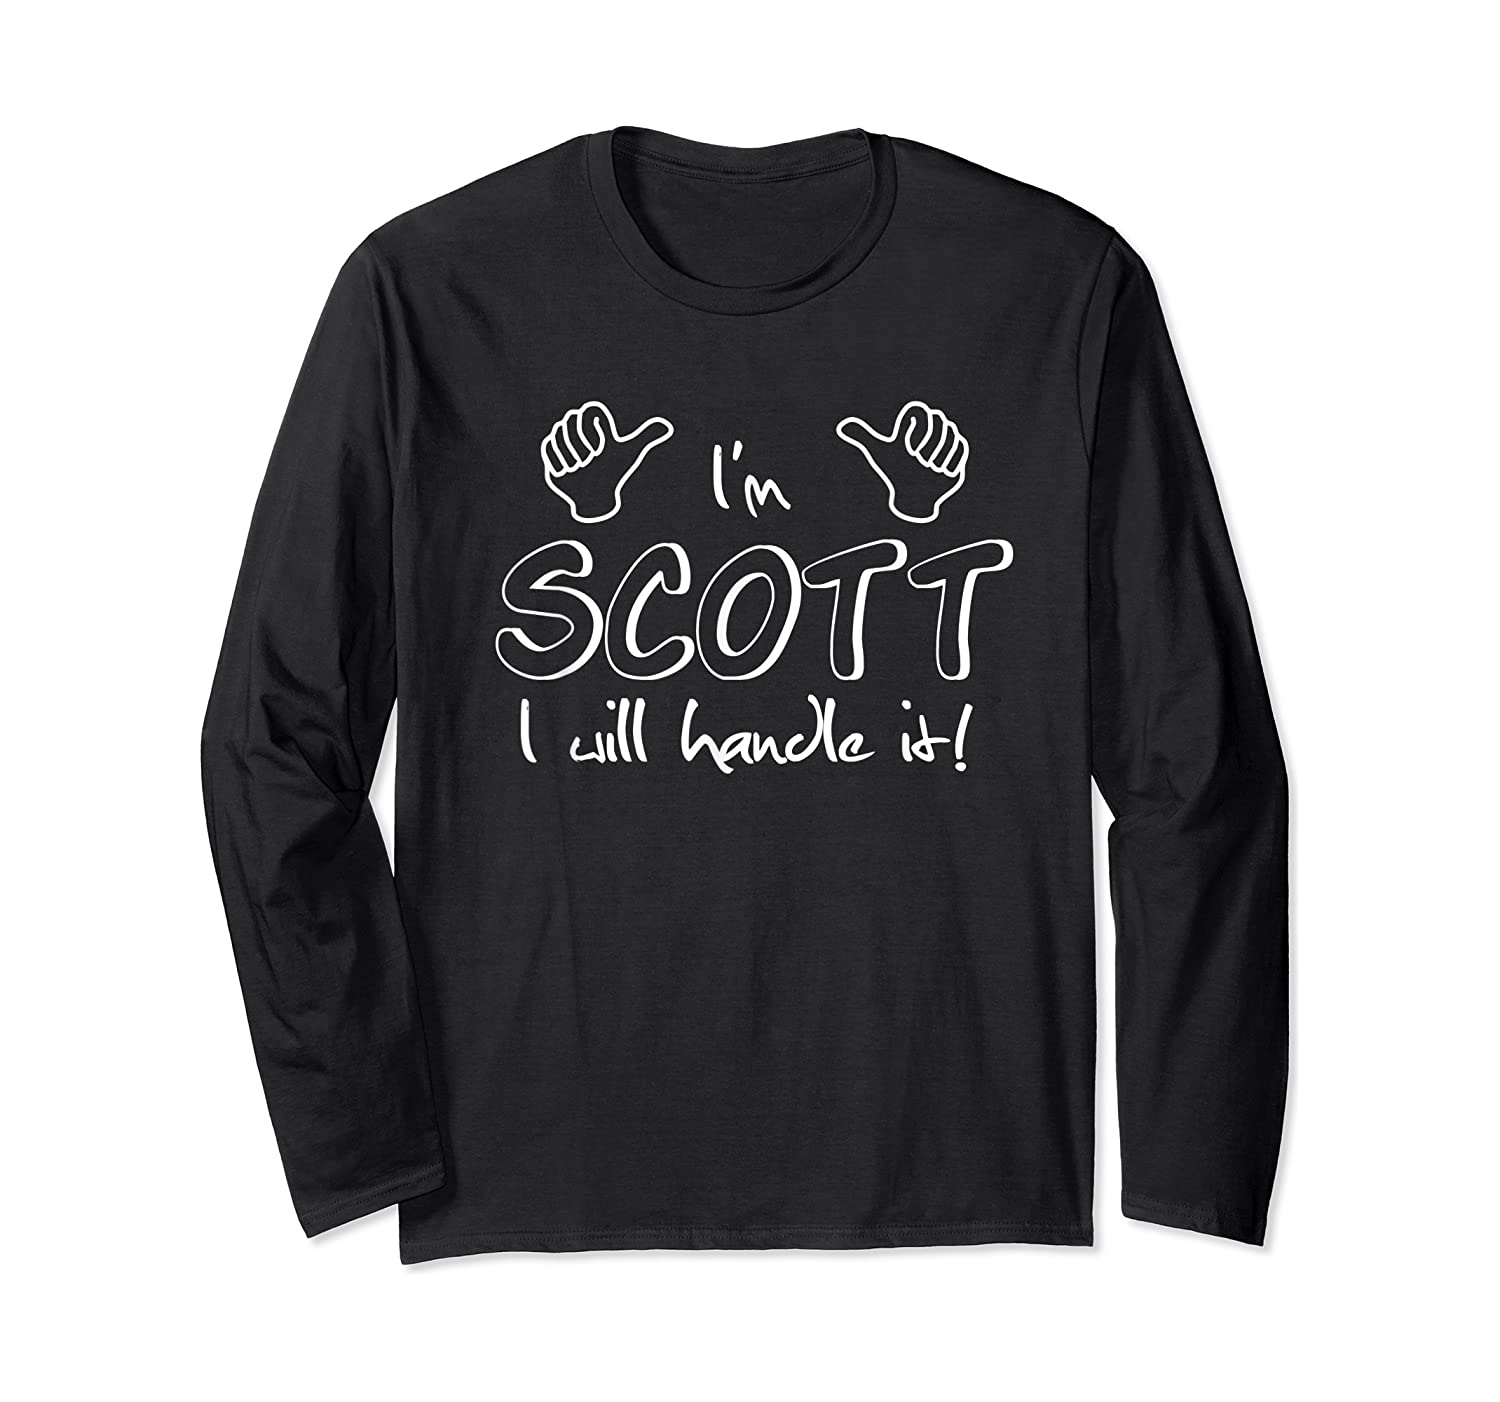 I'm Scott - I Will Handle It! Funny Quote For Your Friend T-shirt Long Sleeve T-shirt